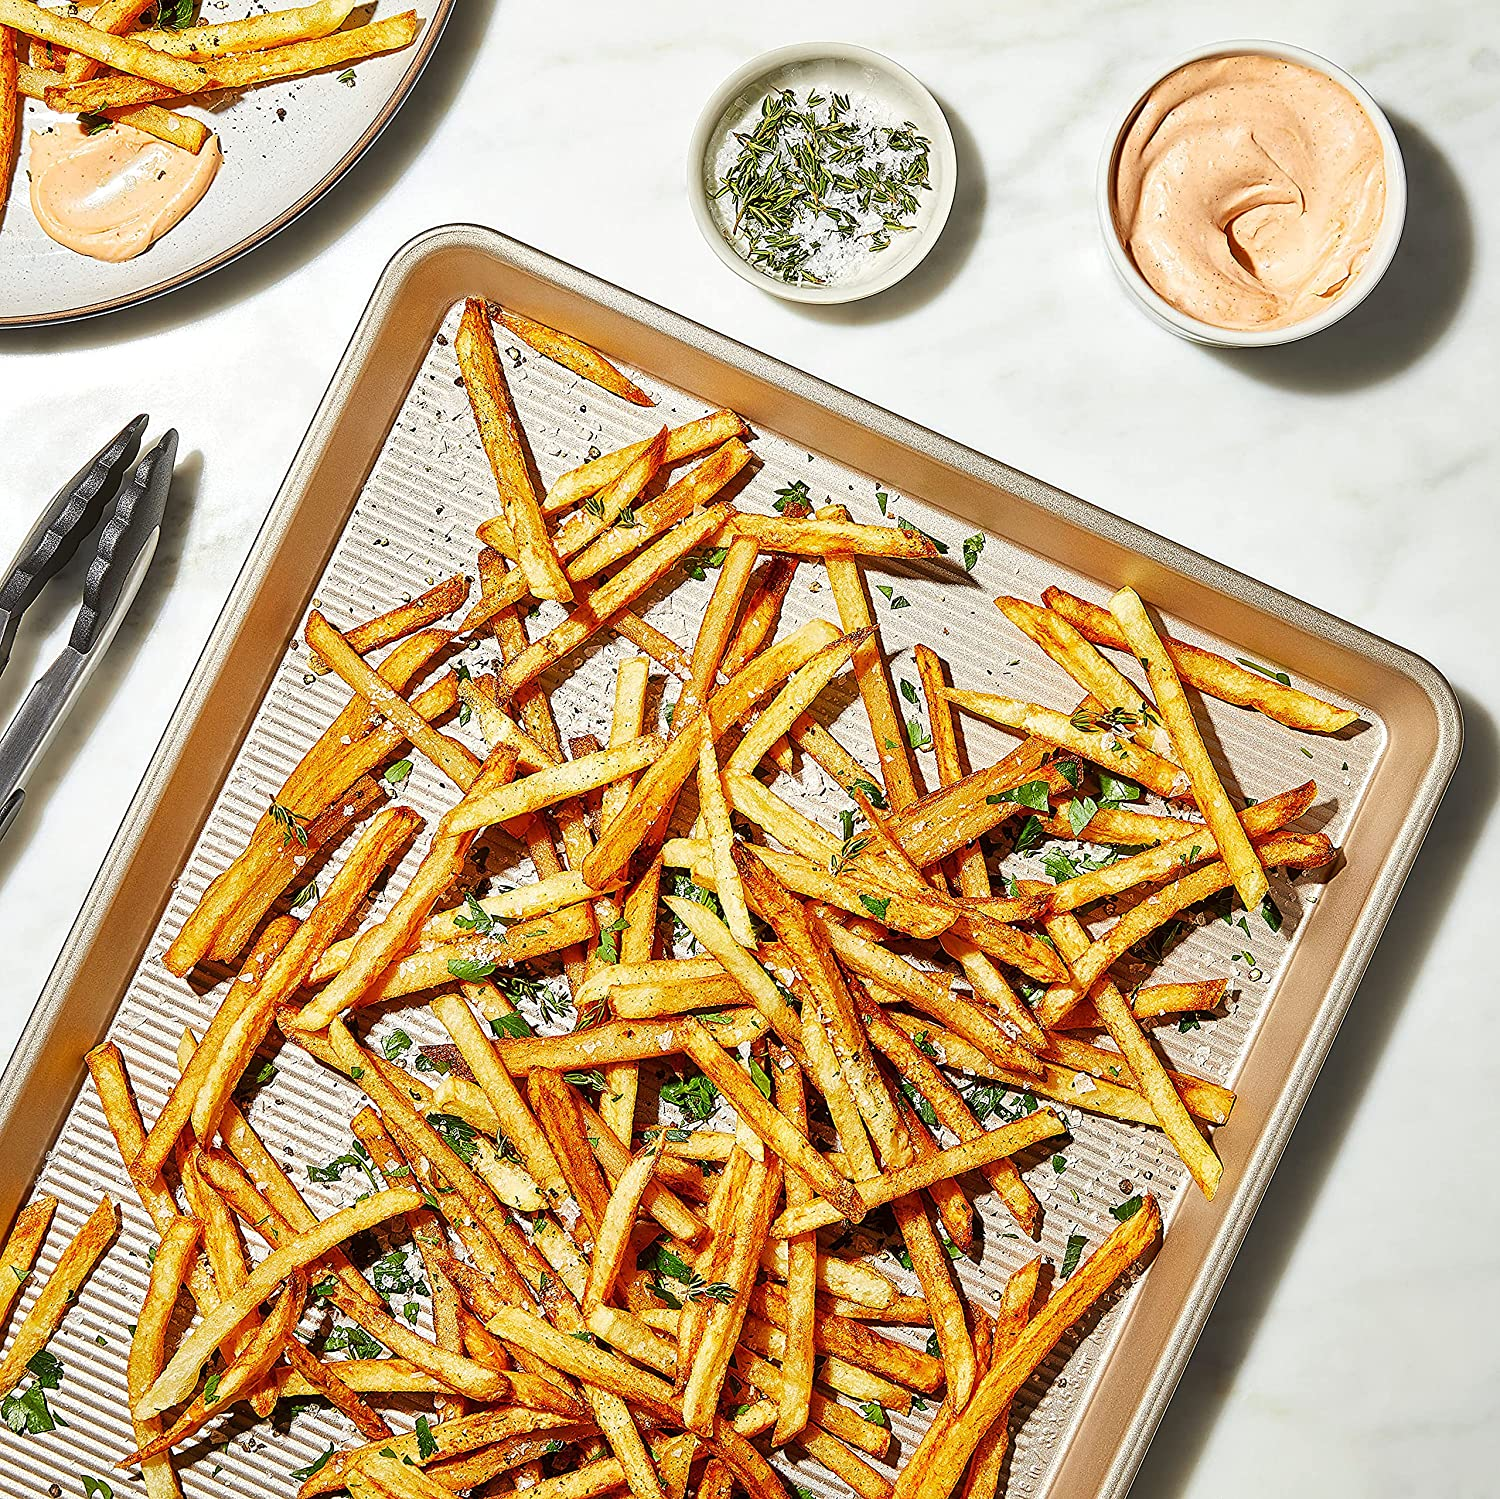 baking sheet with textured surface with french fries